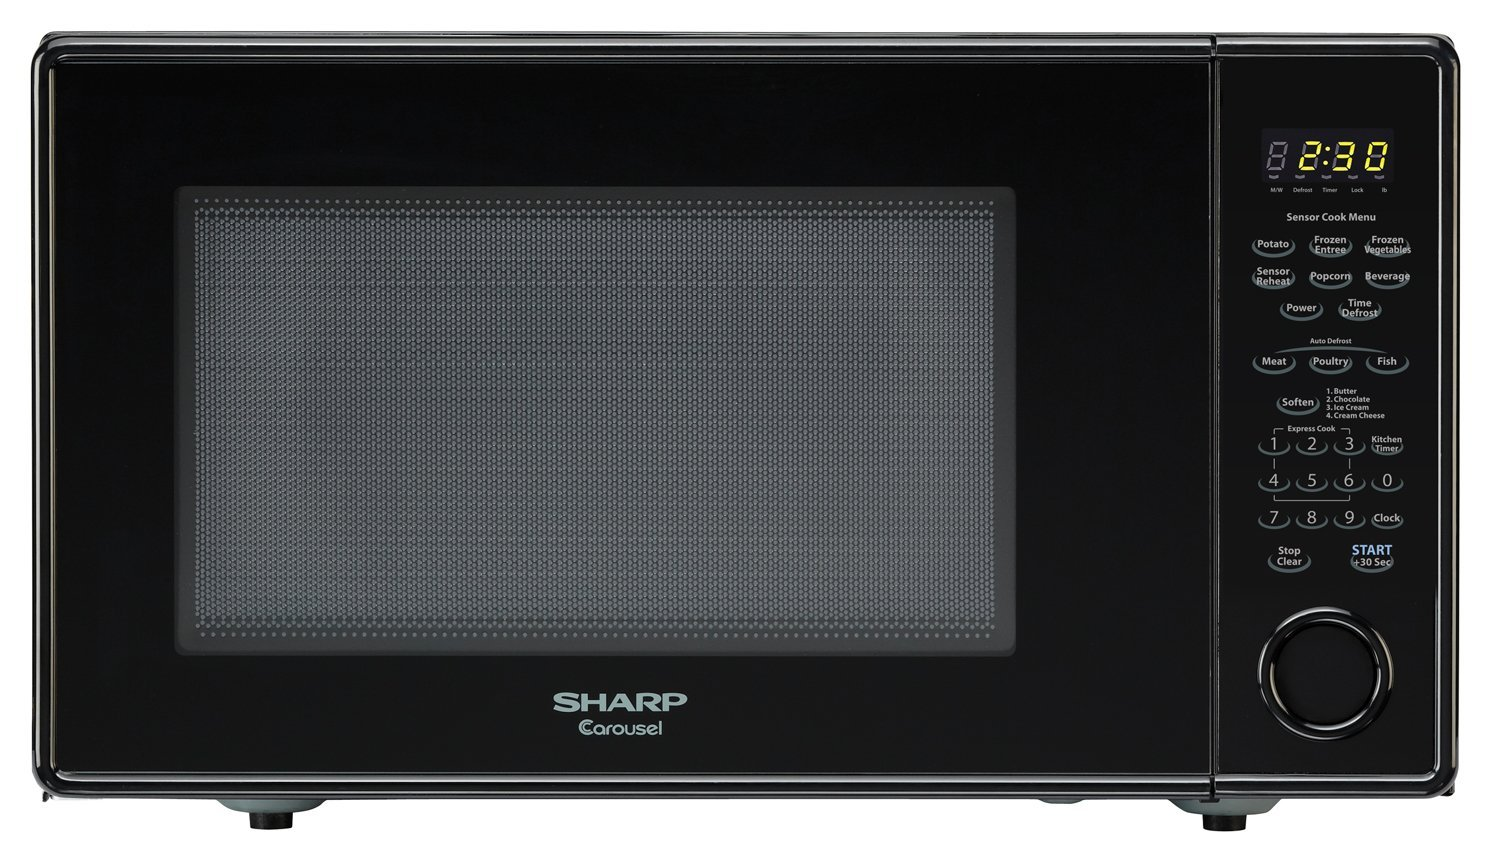 Top 10 Best Built In Microwaves For Tiny Space In 2020